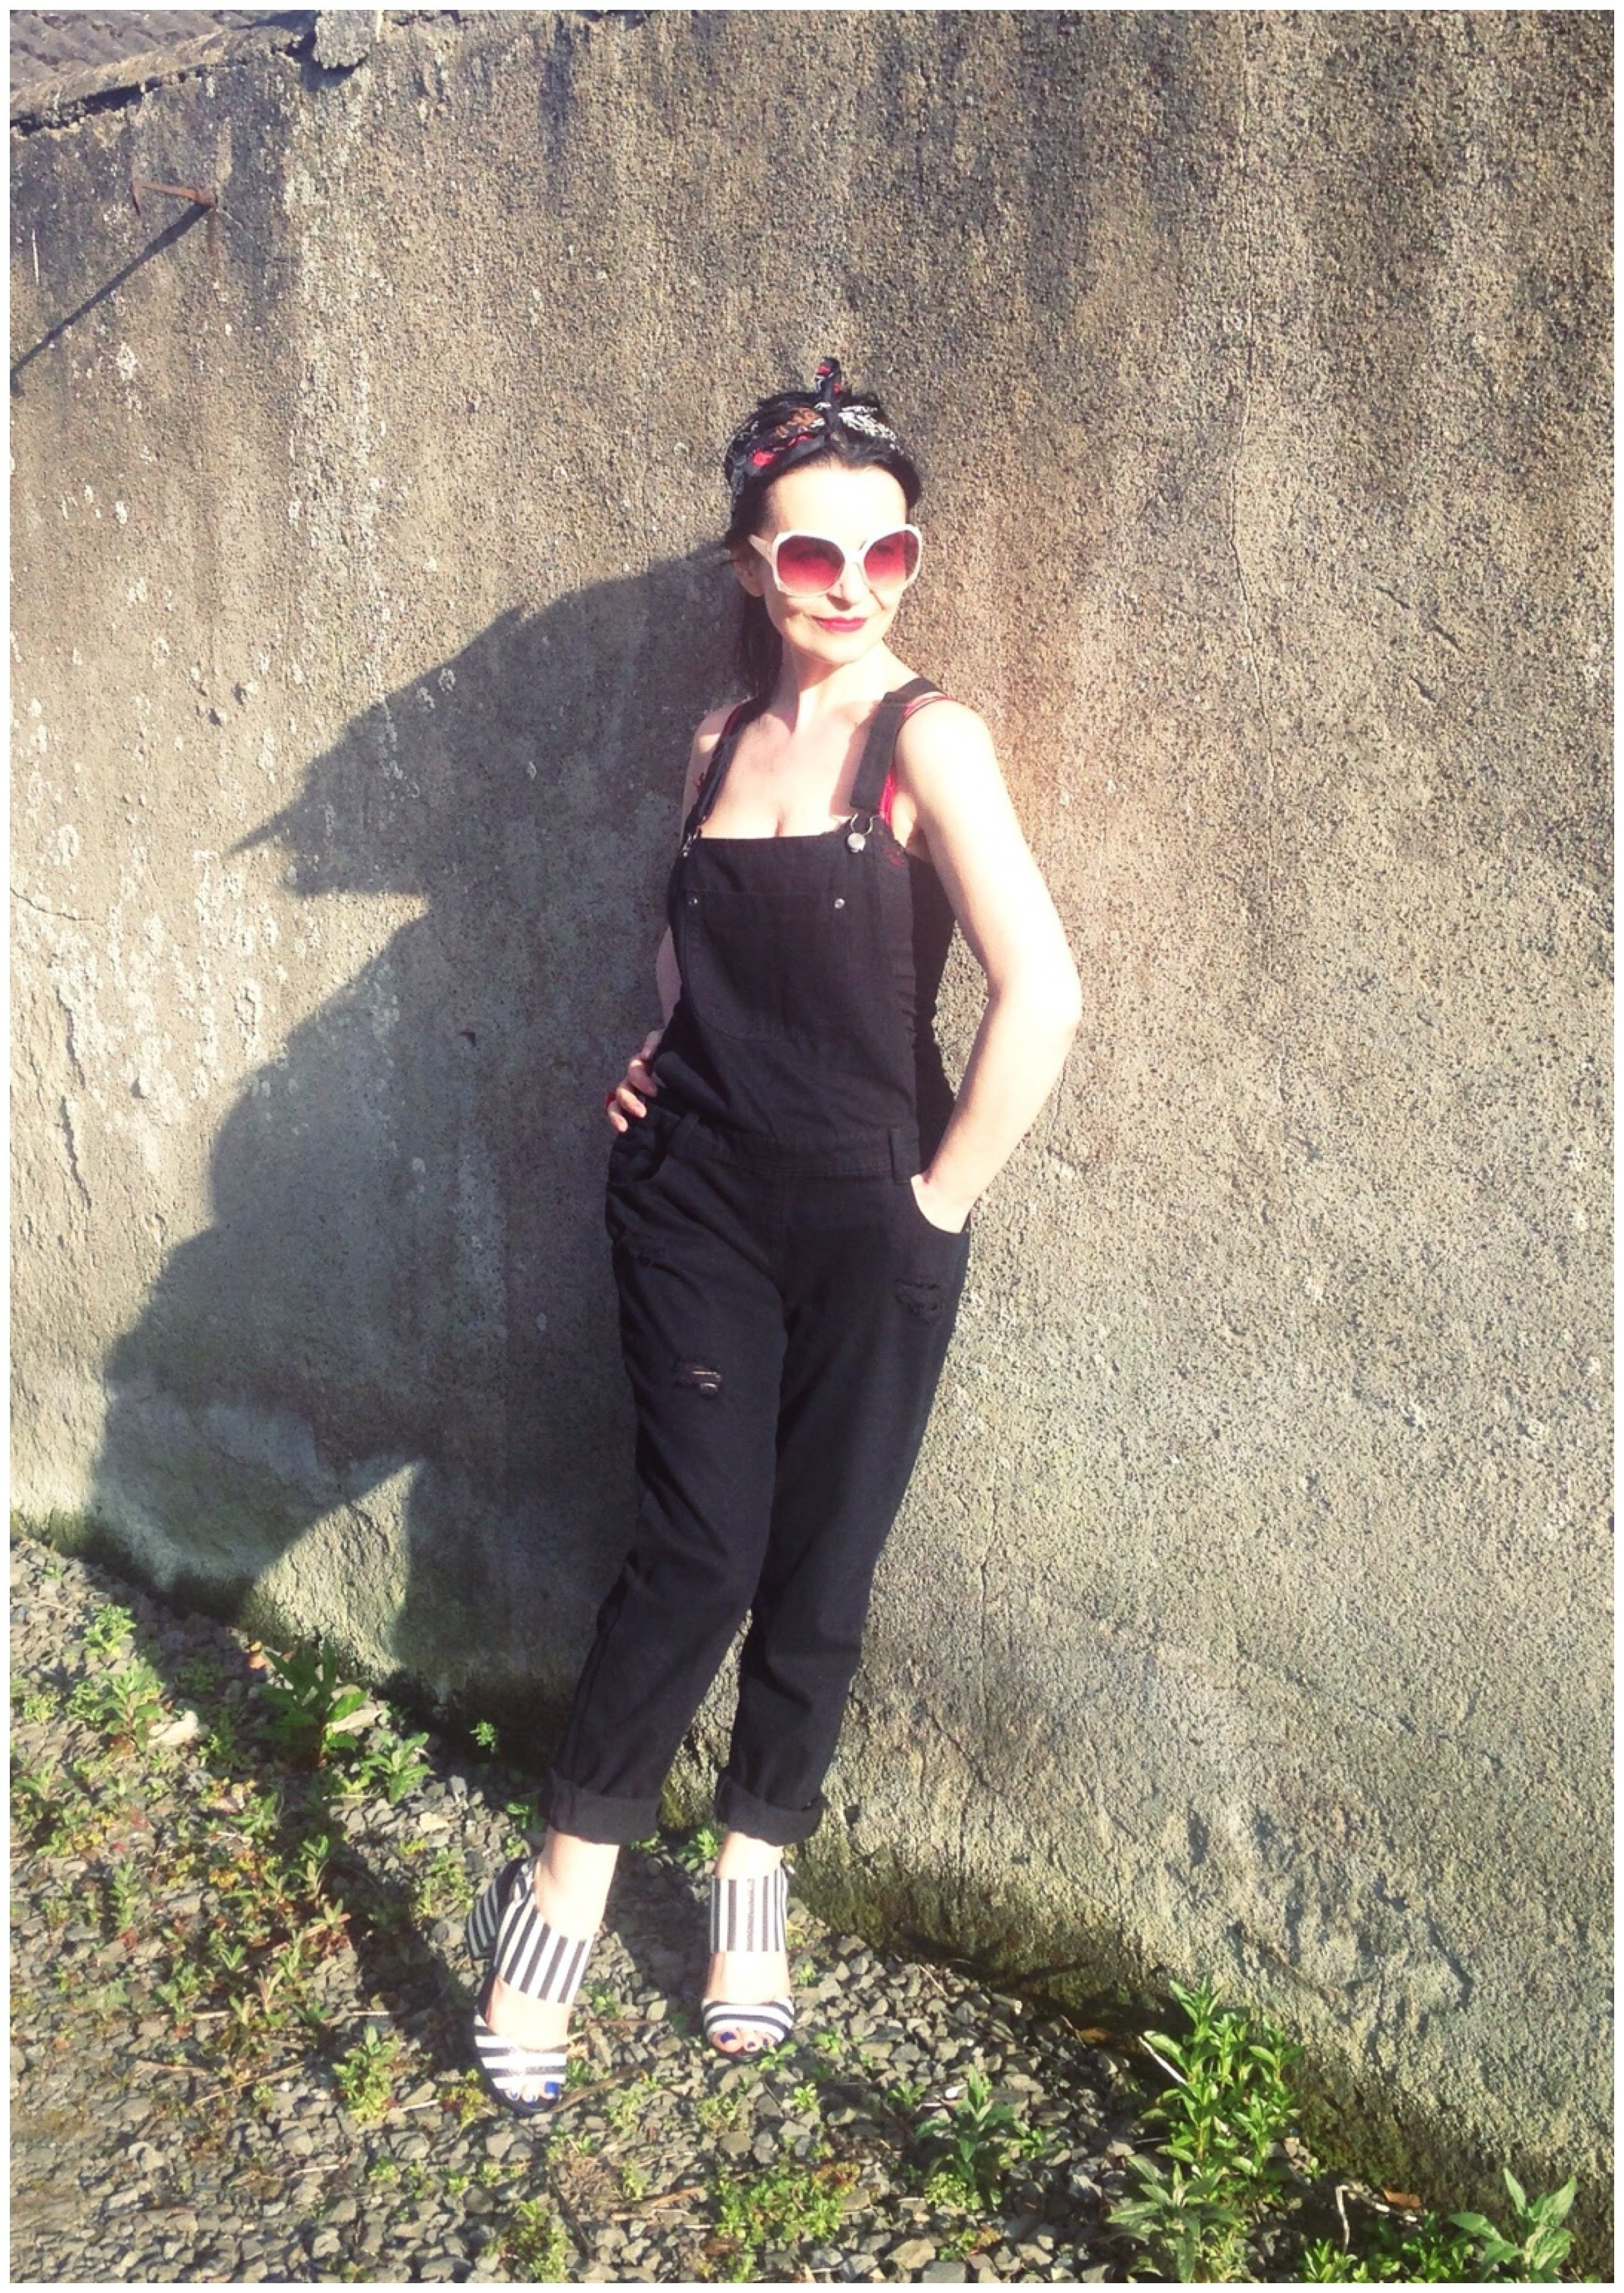 Black Denim Dungarees , Retro scarf ,70s vintage shades and fab monochrome shoes complete this look!